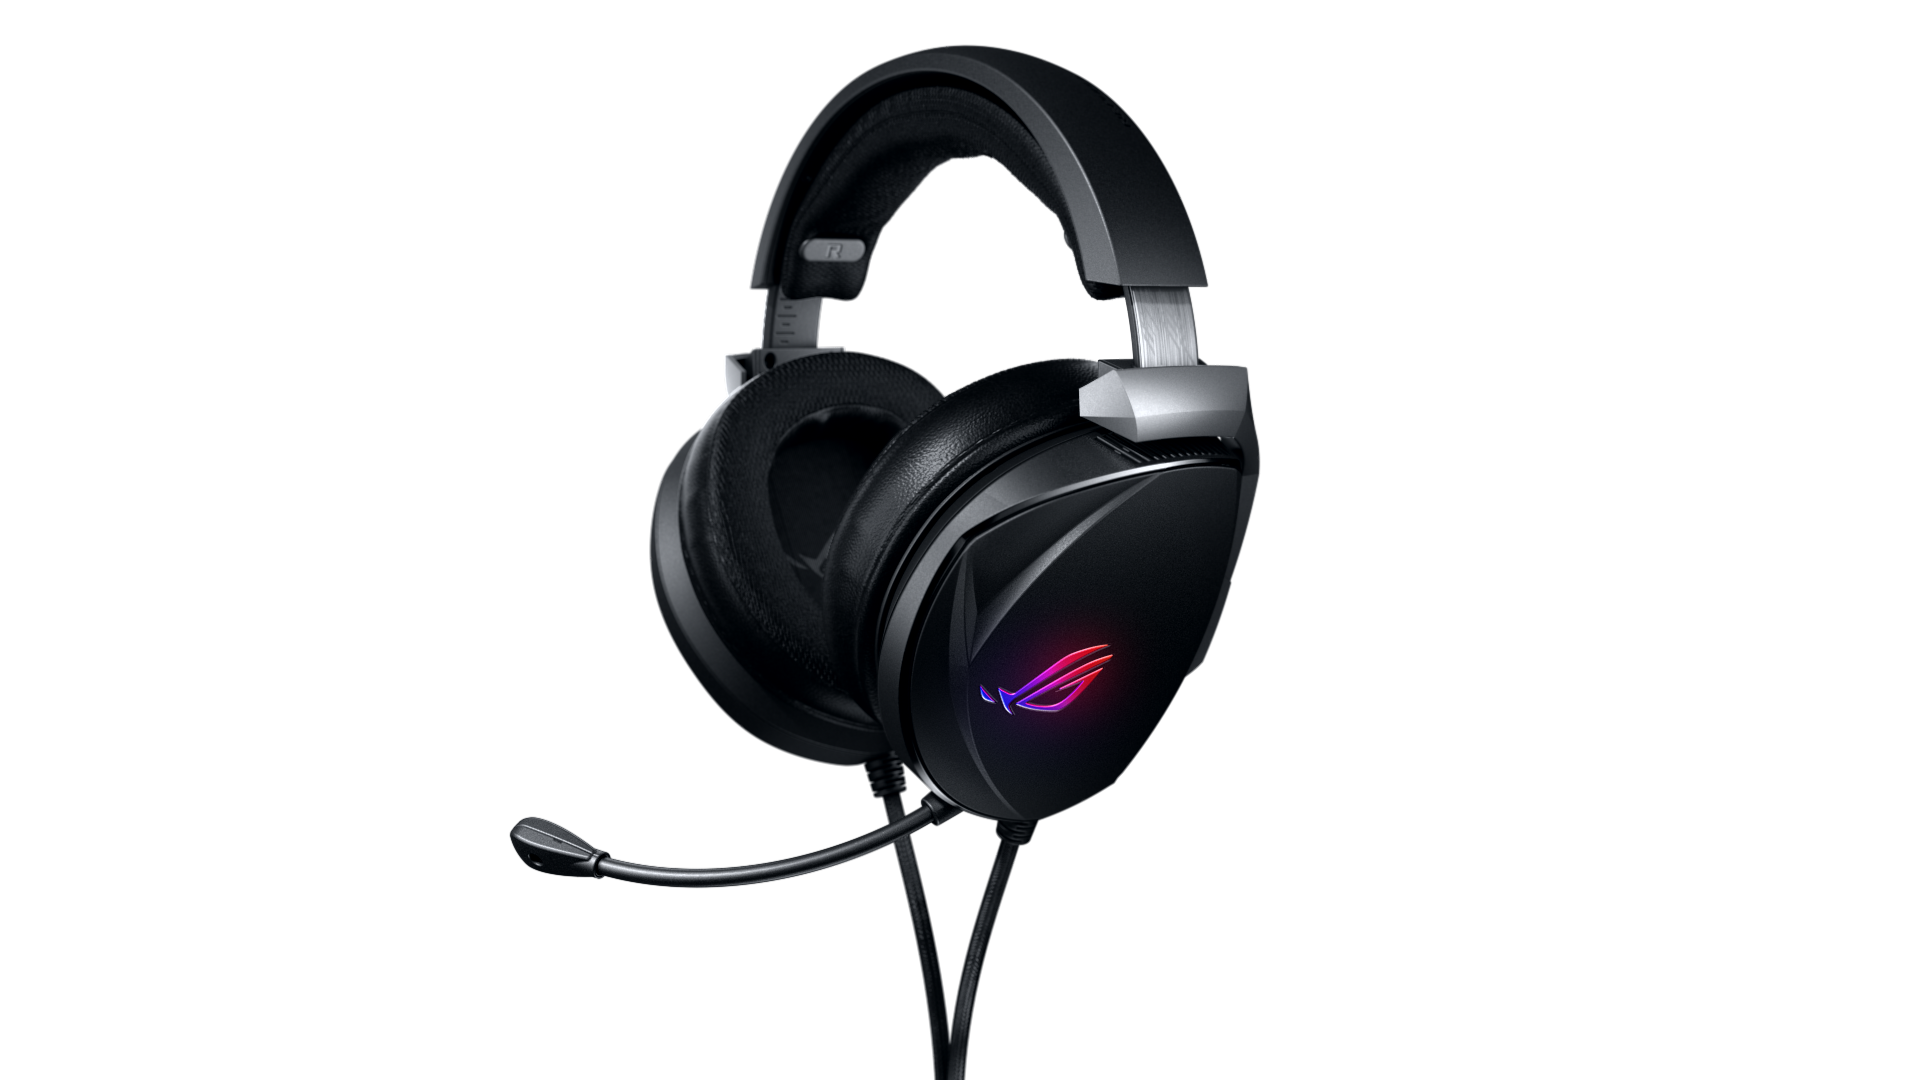 rog-theta-7-1-surround-gaming-headset-png.6910